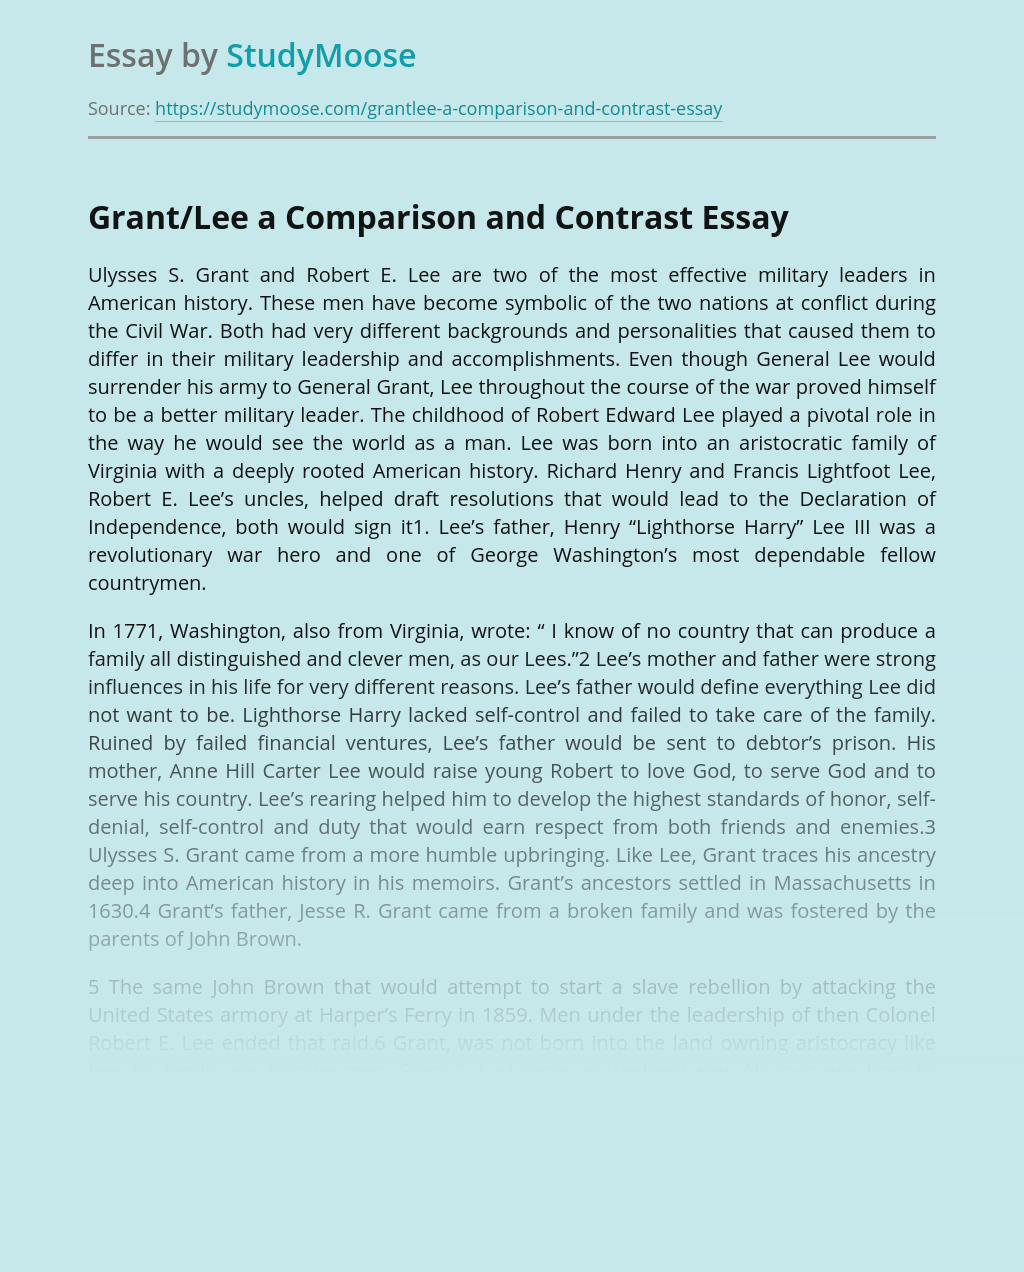 Ulysses S. Grant and Robert E. Lee: Comparison and Contrast